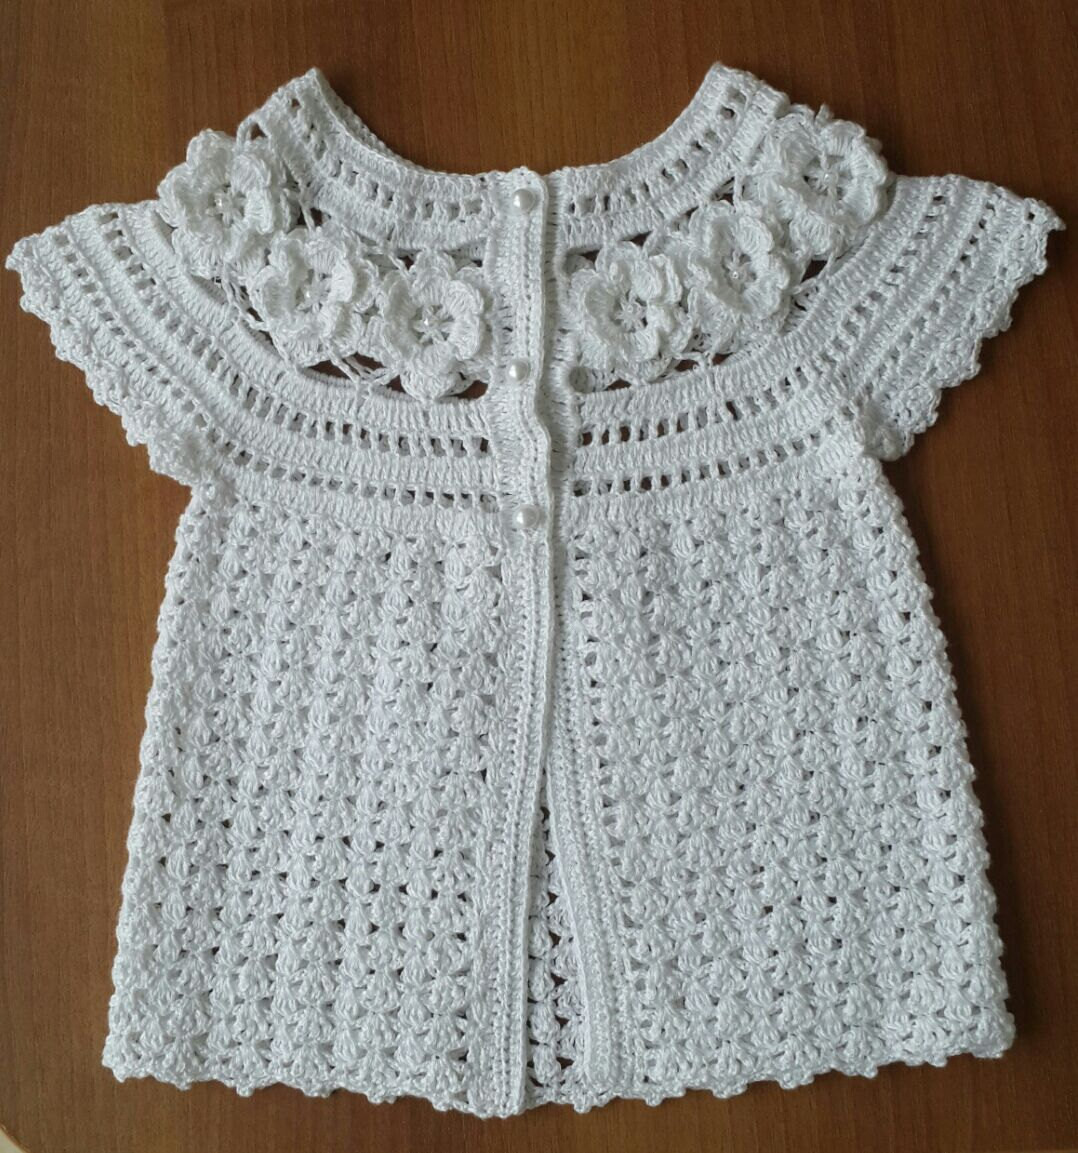 Best Of Knit Baby Dress Baby Dress Knitted Baby Dress Baby Dress Knit Baby Pants Of Attractive 44 Pics Knit Baby Pants